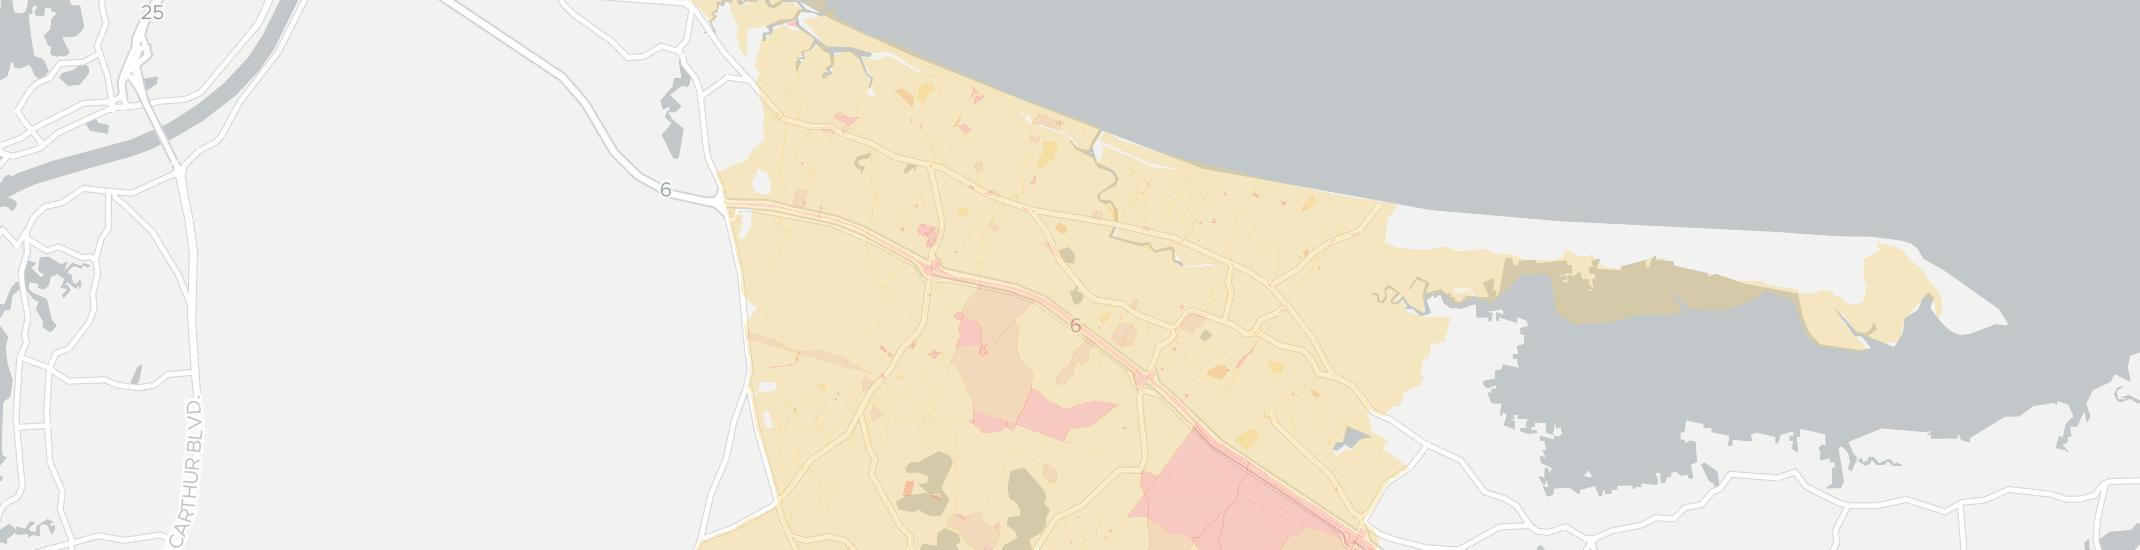 East Sandwich Internet Competition Map. Click for interactive map.